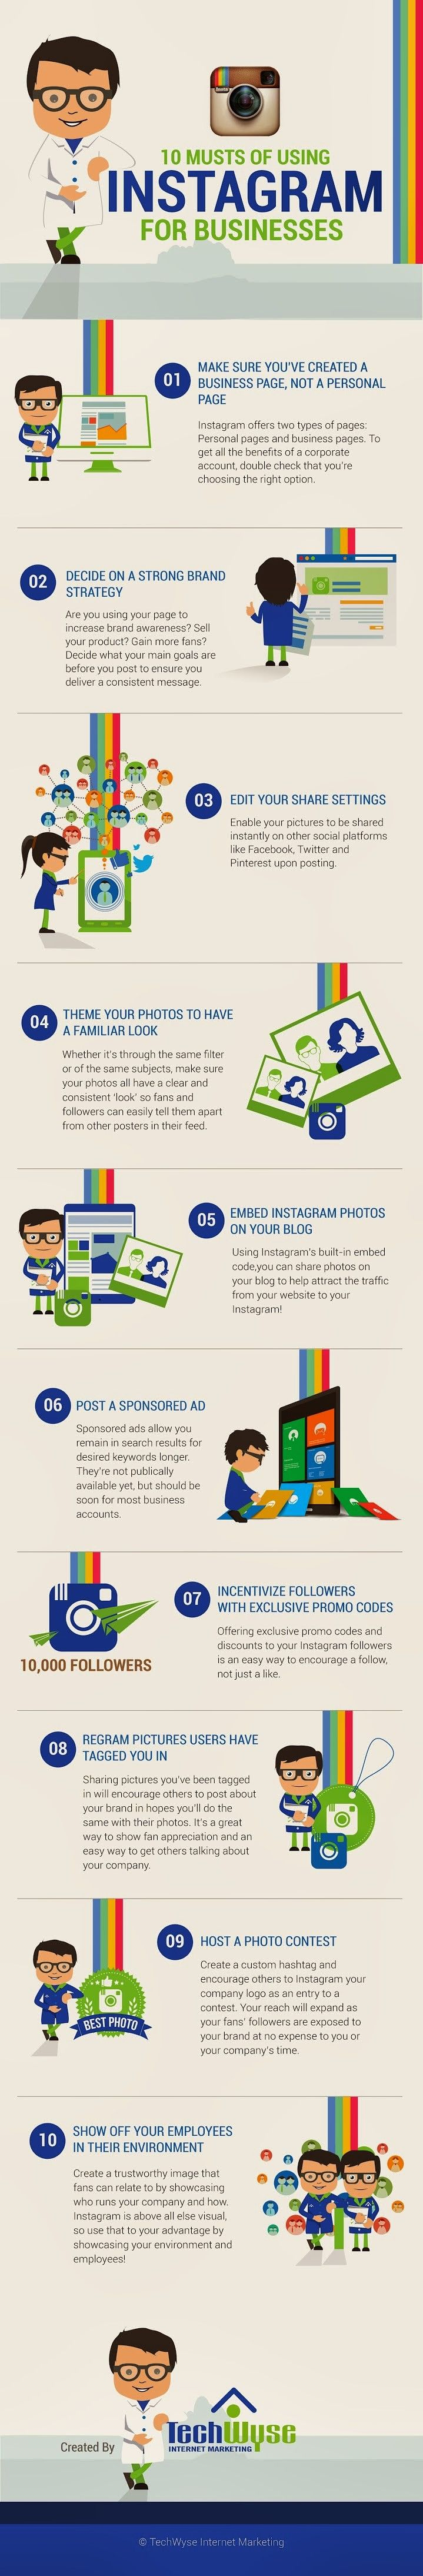 Discover what you absolutely must do if you want your business to succeed on Instagram - a social media infographic guide